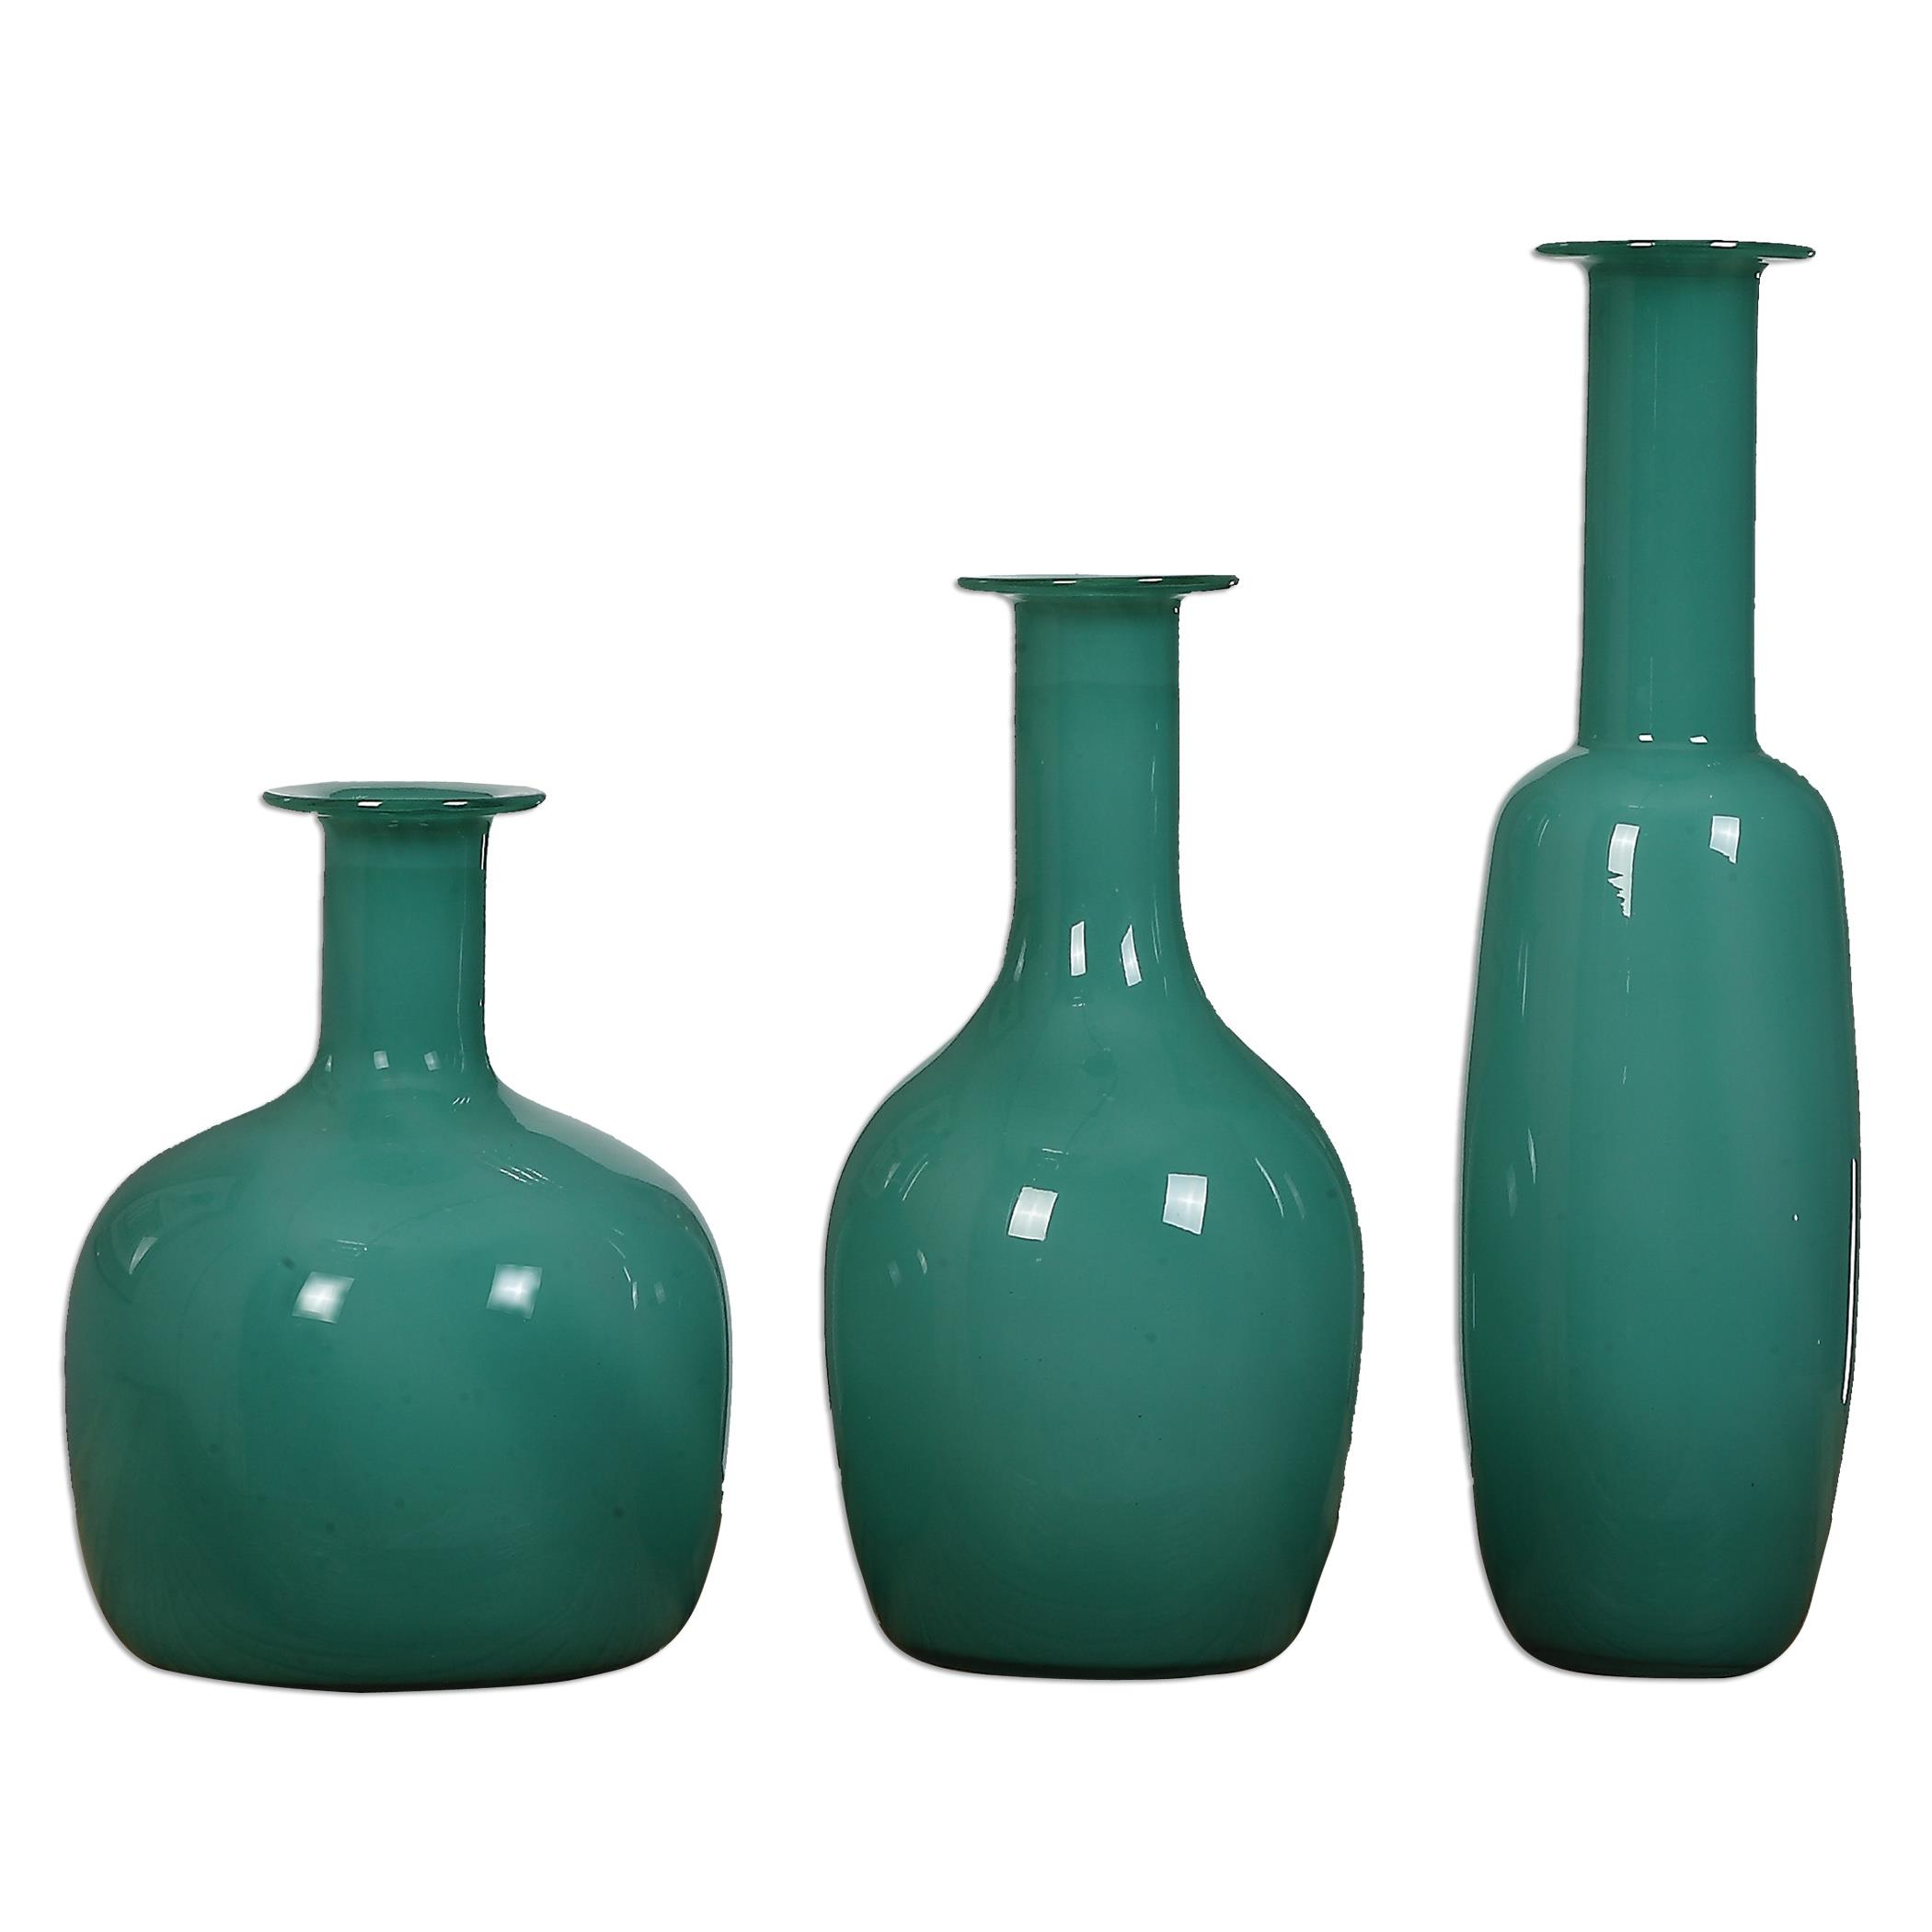 Uttermost Accessories Baram Turquoise Vases, S/3 - Item Number: 20017